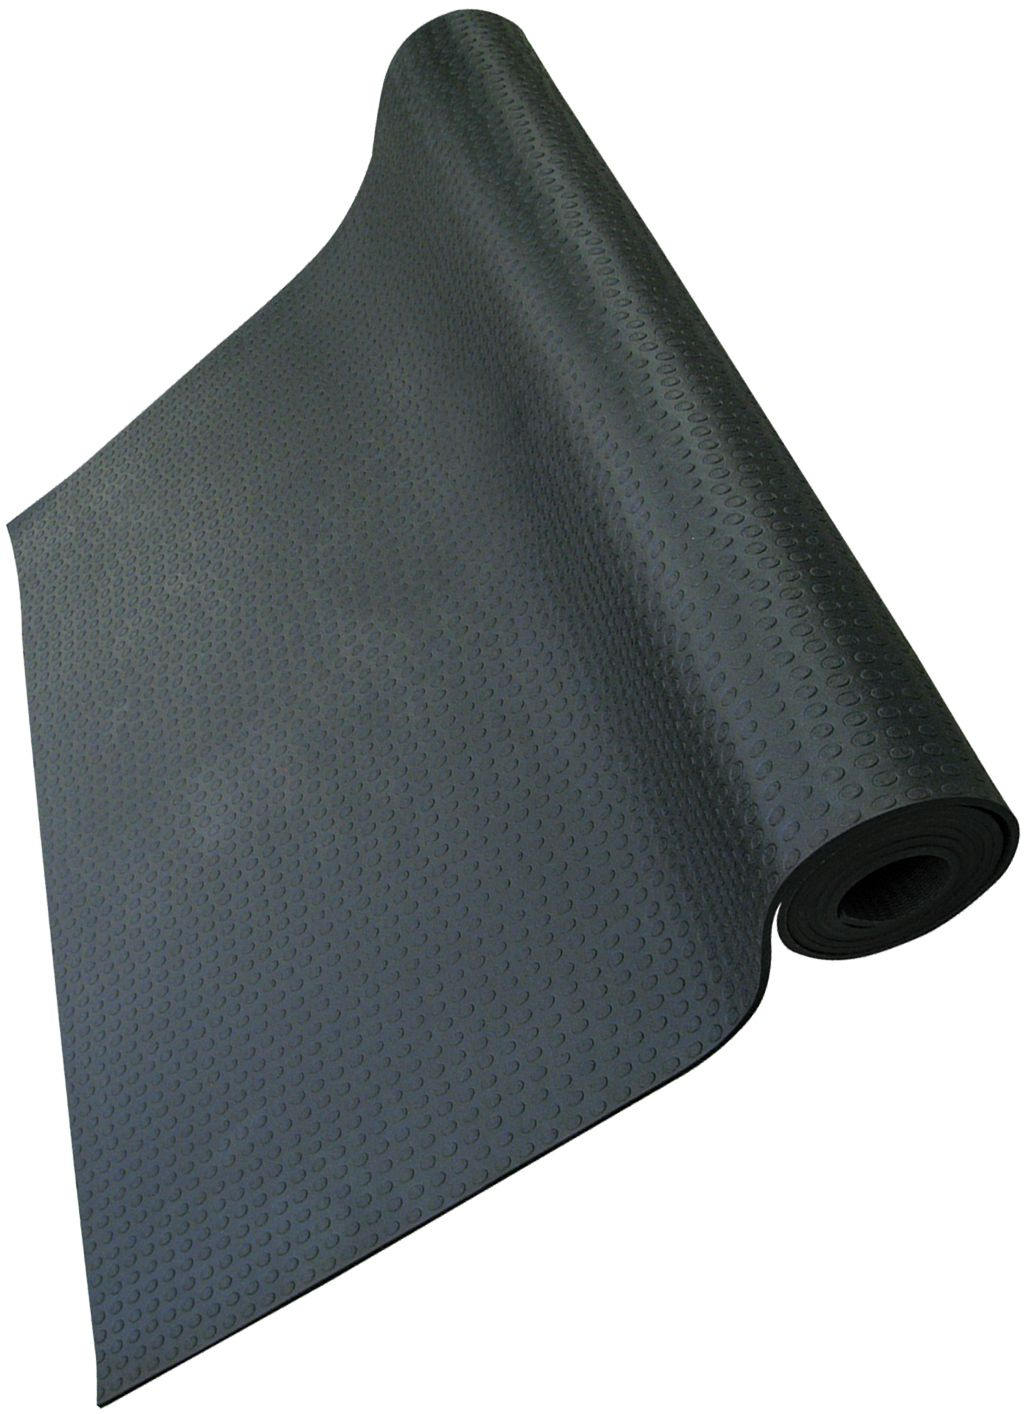 Rubber floor mats workout - Product Image Spri Pro Tech Equipment Mat